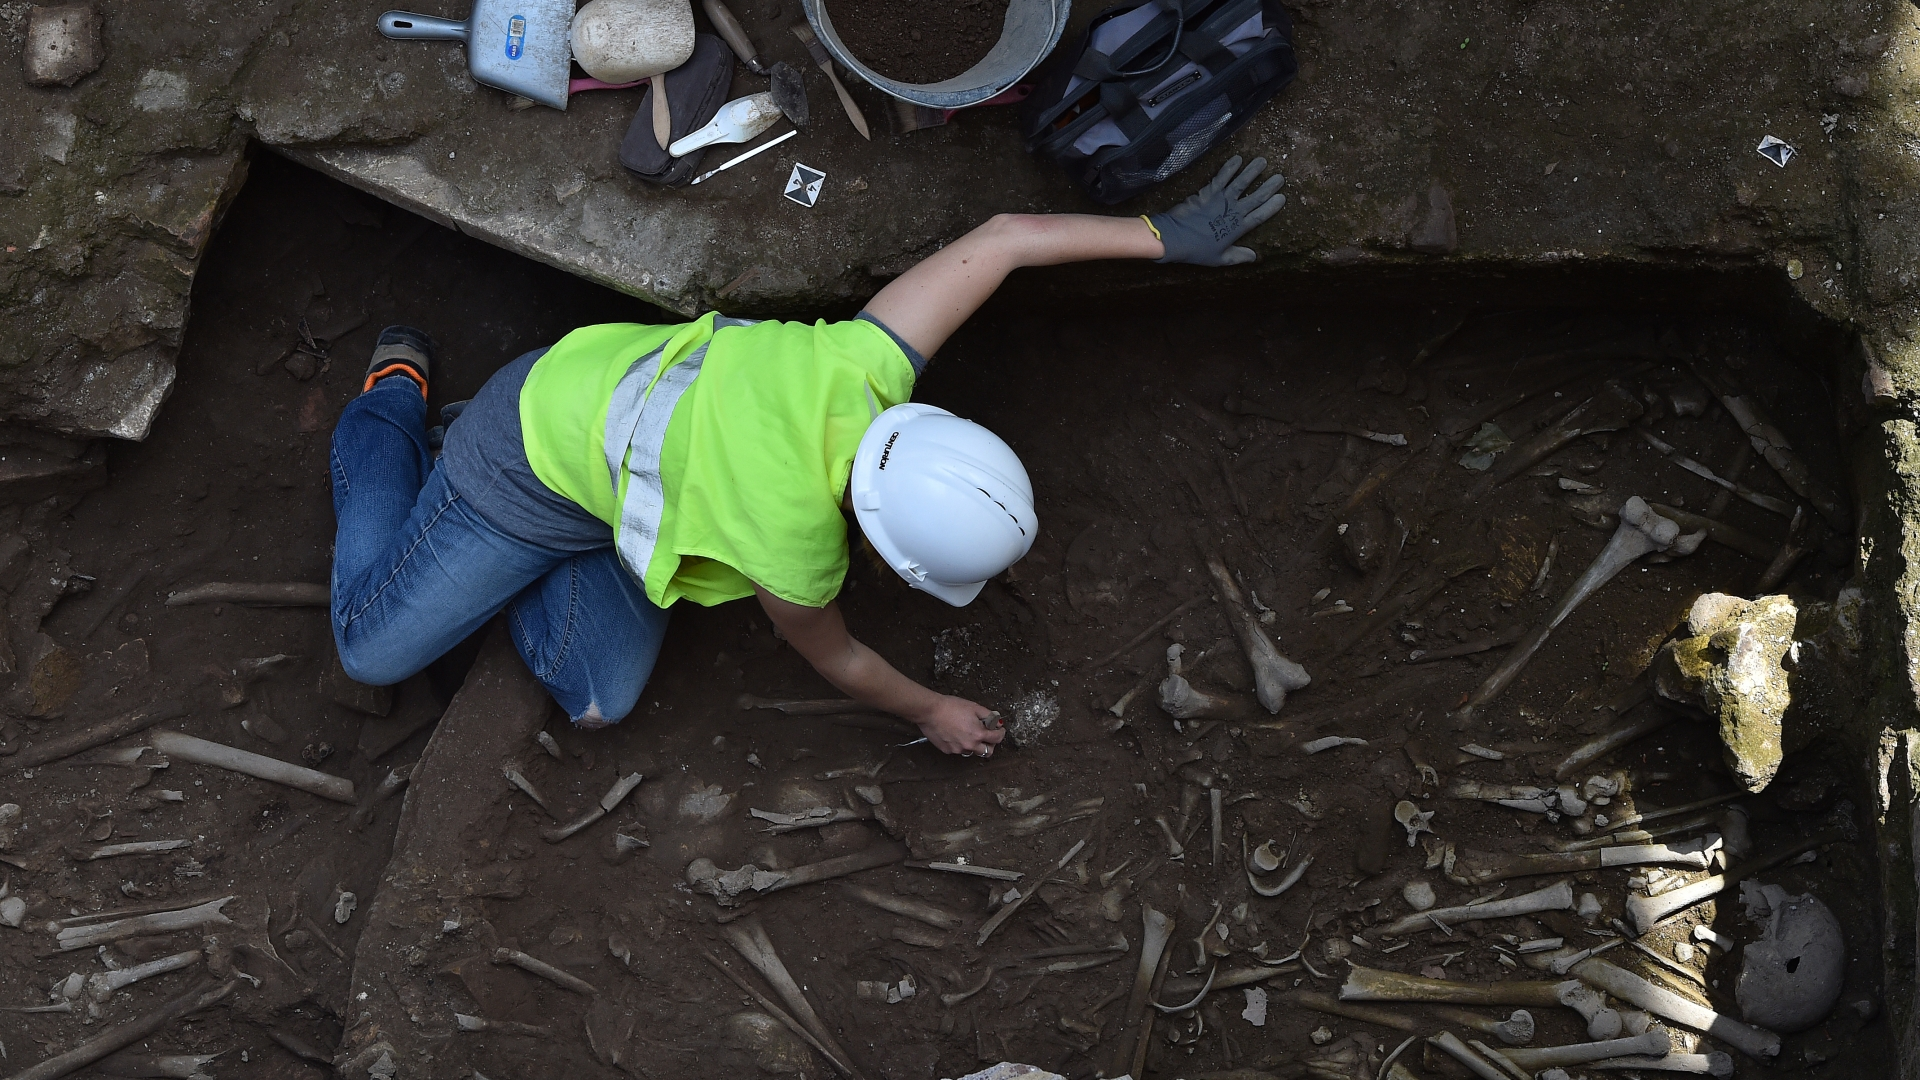 Archaeologists found a collective grave, where they have so far discovered 13 adult skeletons along with a bronze coin and a bronze bracelet. Officials hope to incorporate the discovery into the new metro station, which is scheduled to open in 2020. (Credit: Eric Vandeville/Sipa USA/AP Photo)